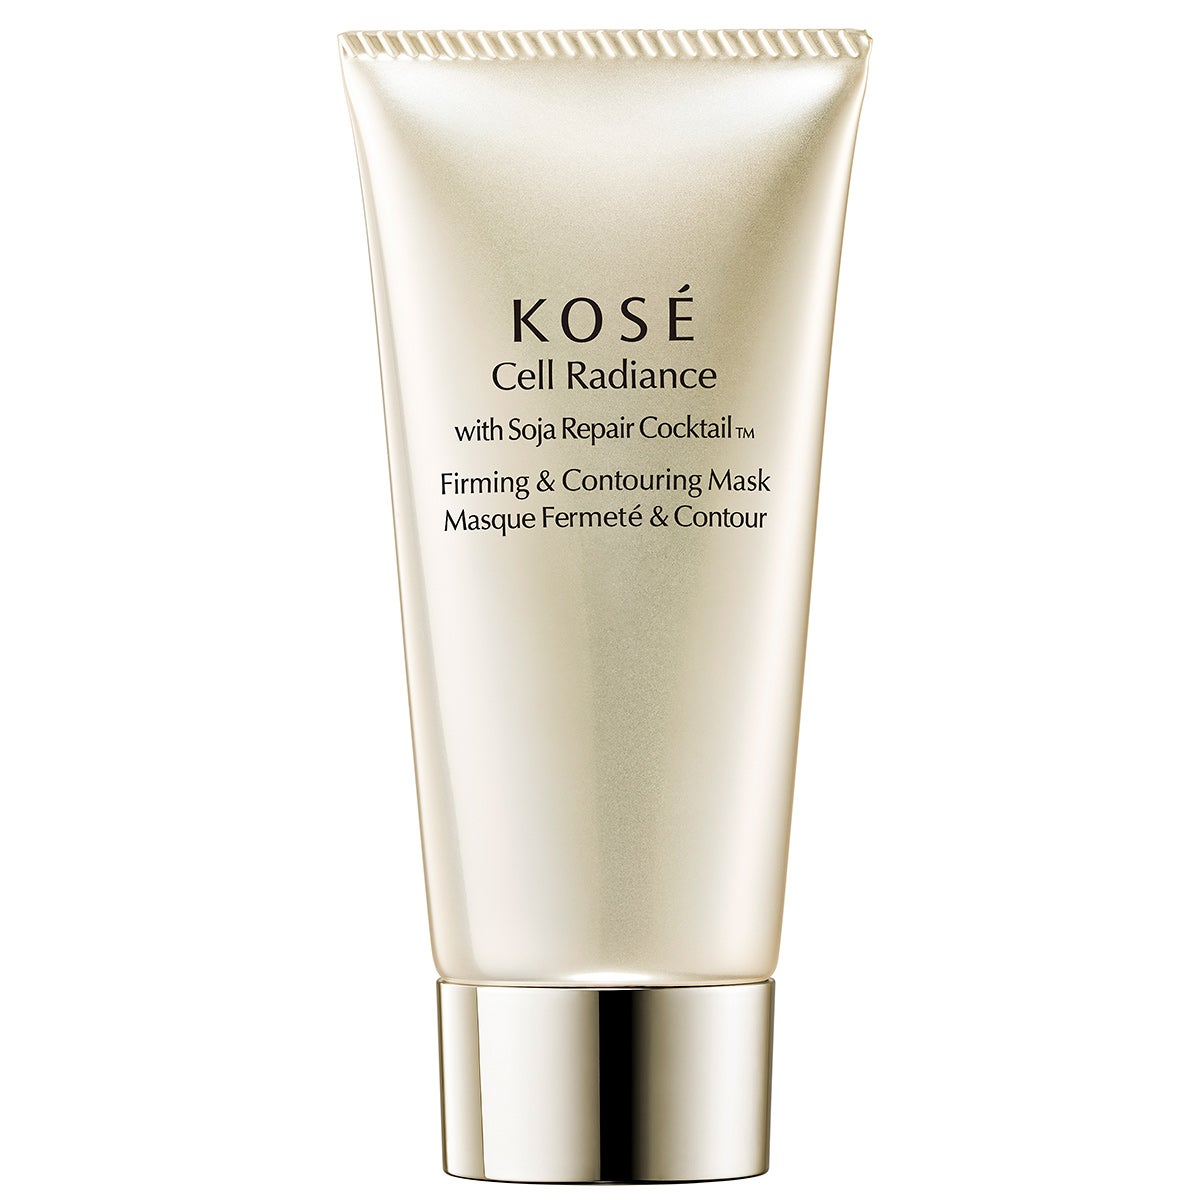 KOSÉ Cell Radiance Firming & Contouring Mask